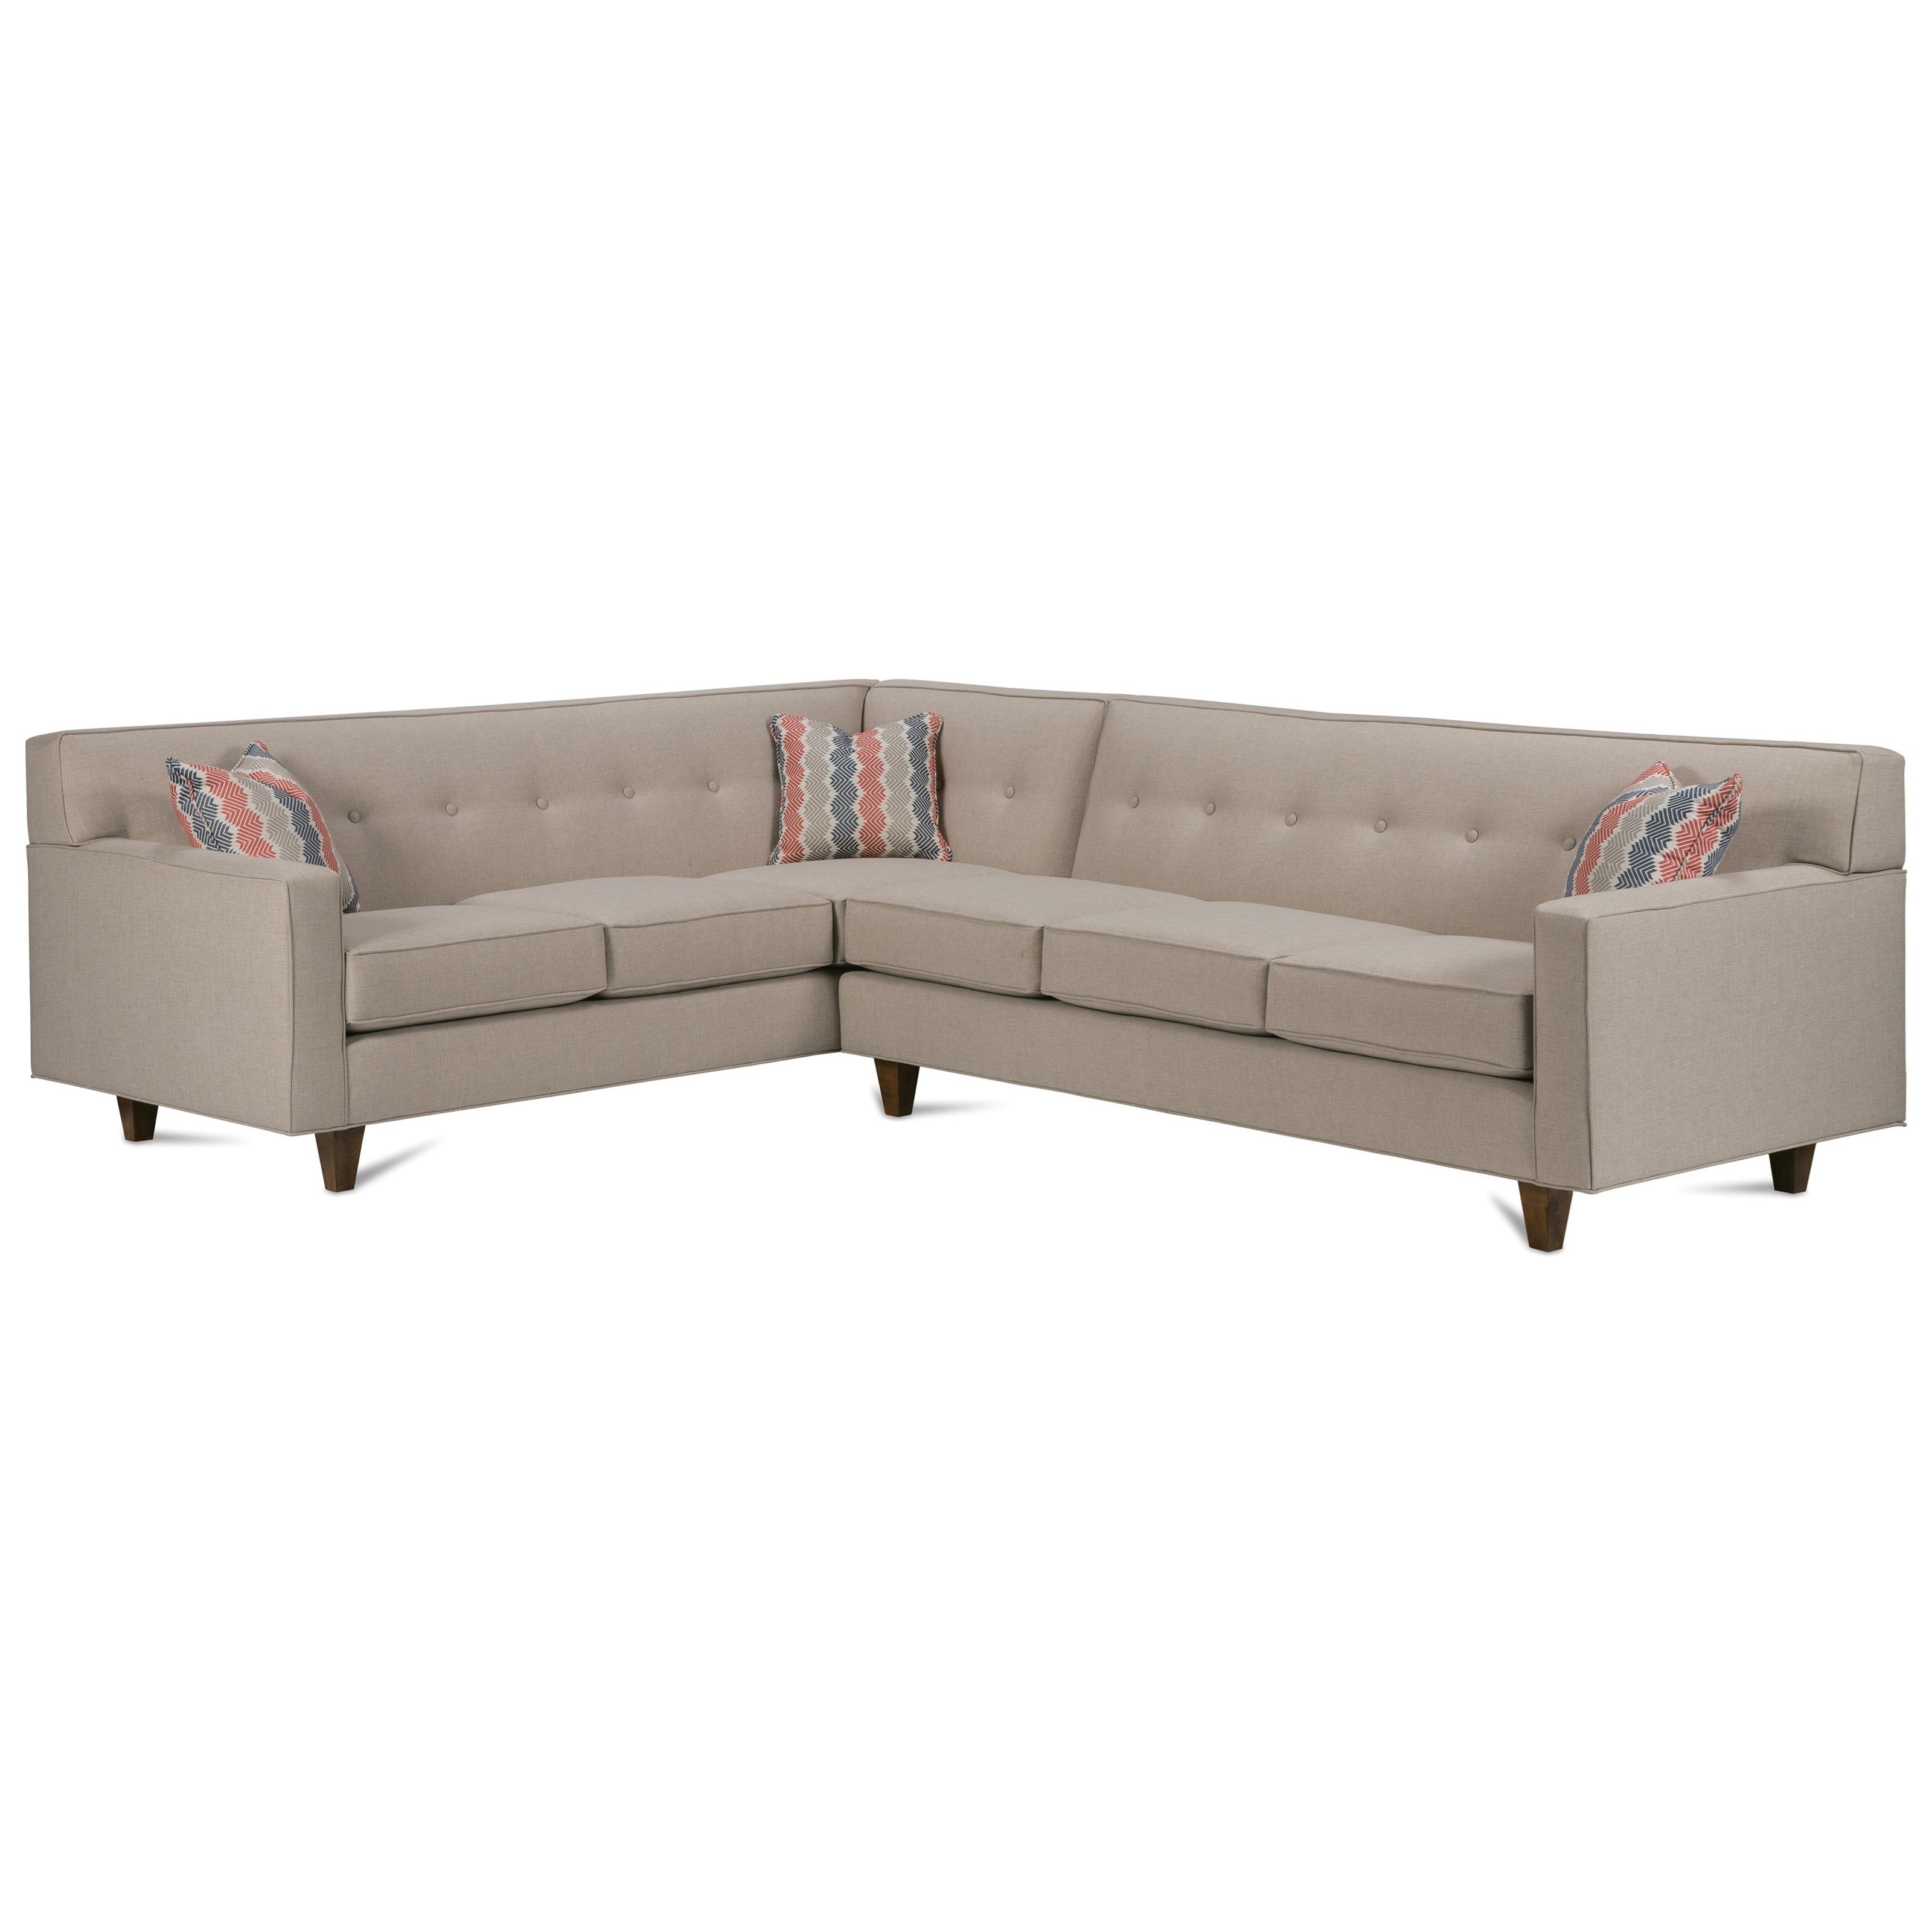 Rowe Dorset Corner Sectional With Tufted Back Becker Furniture World Sectional Sofas